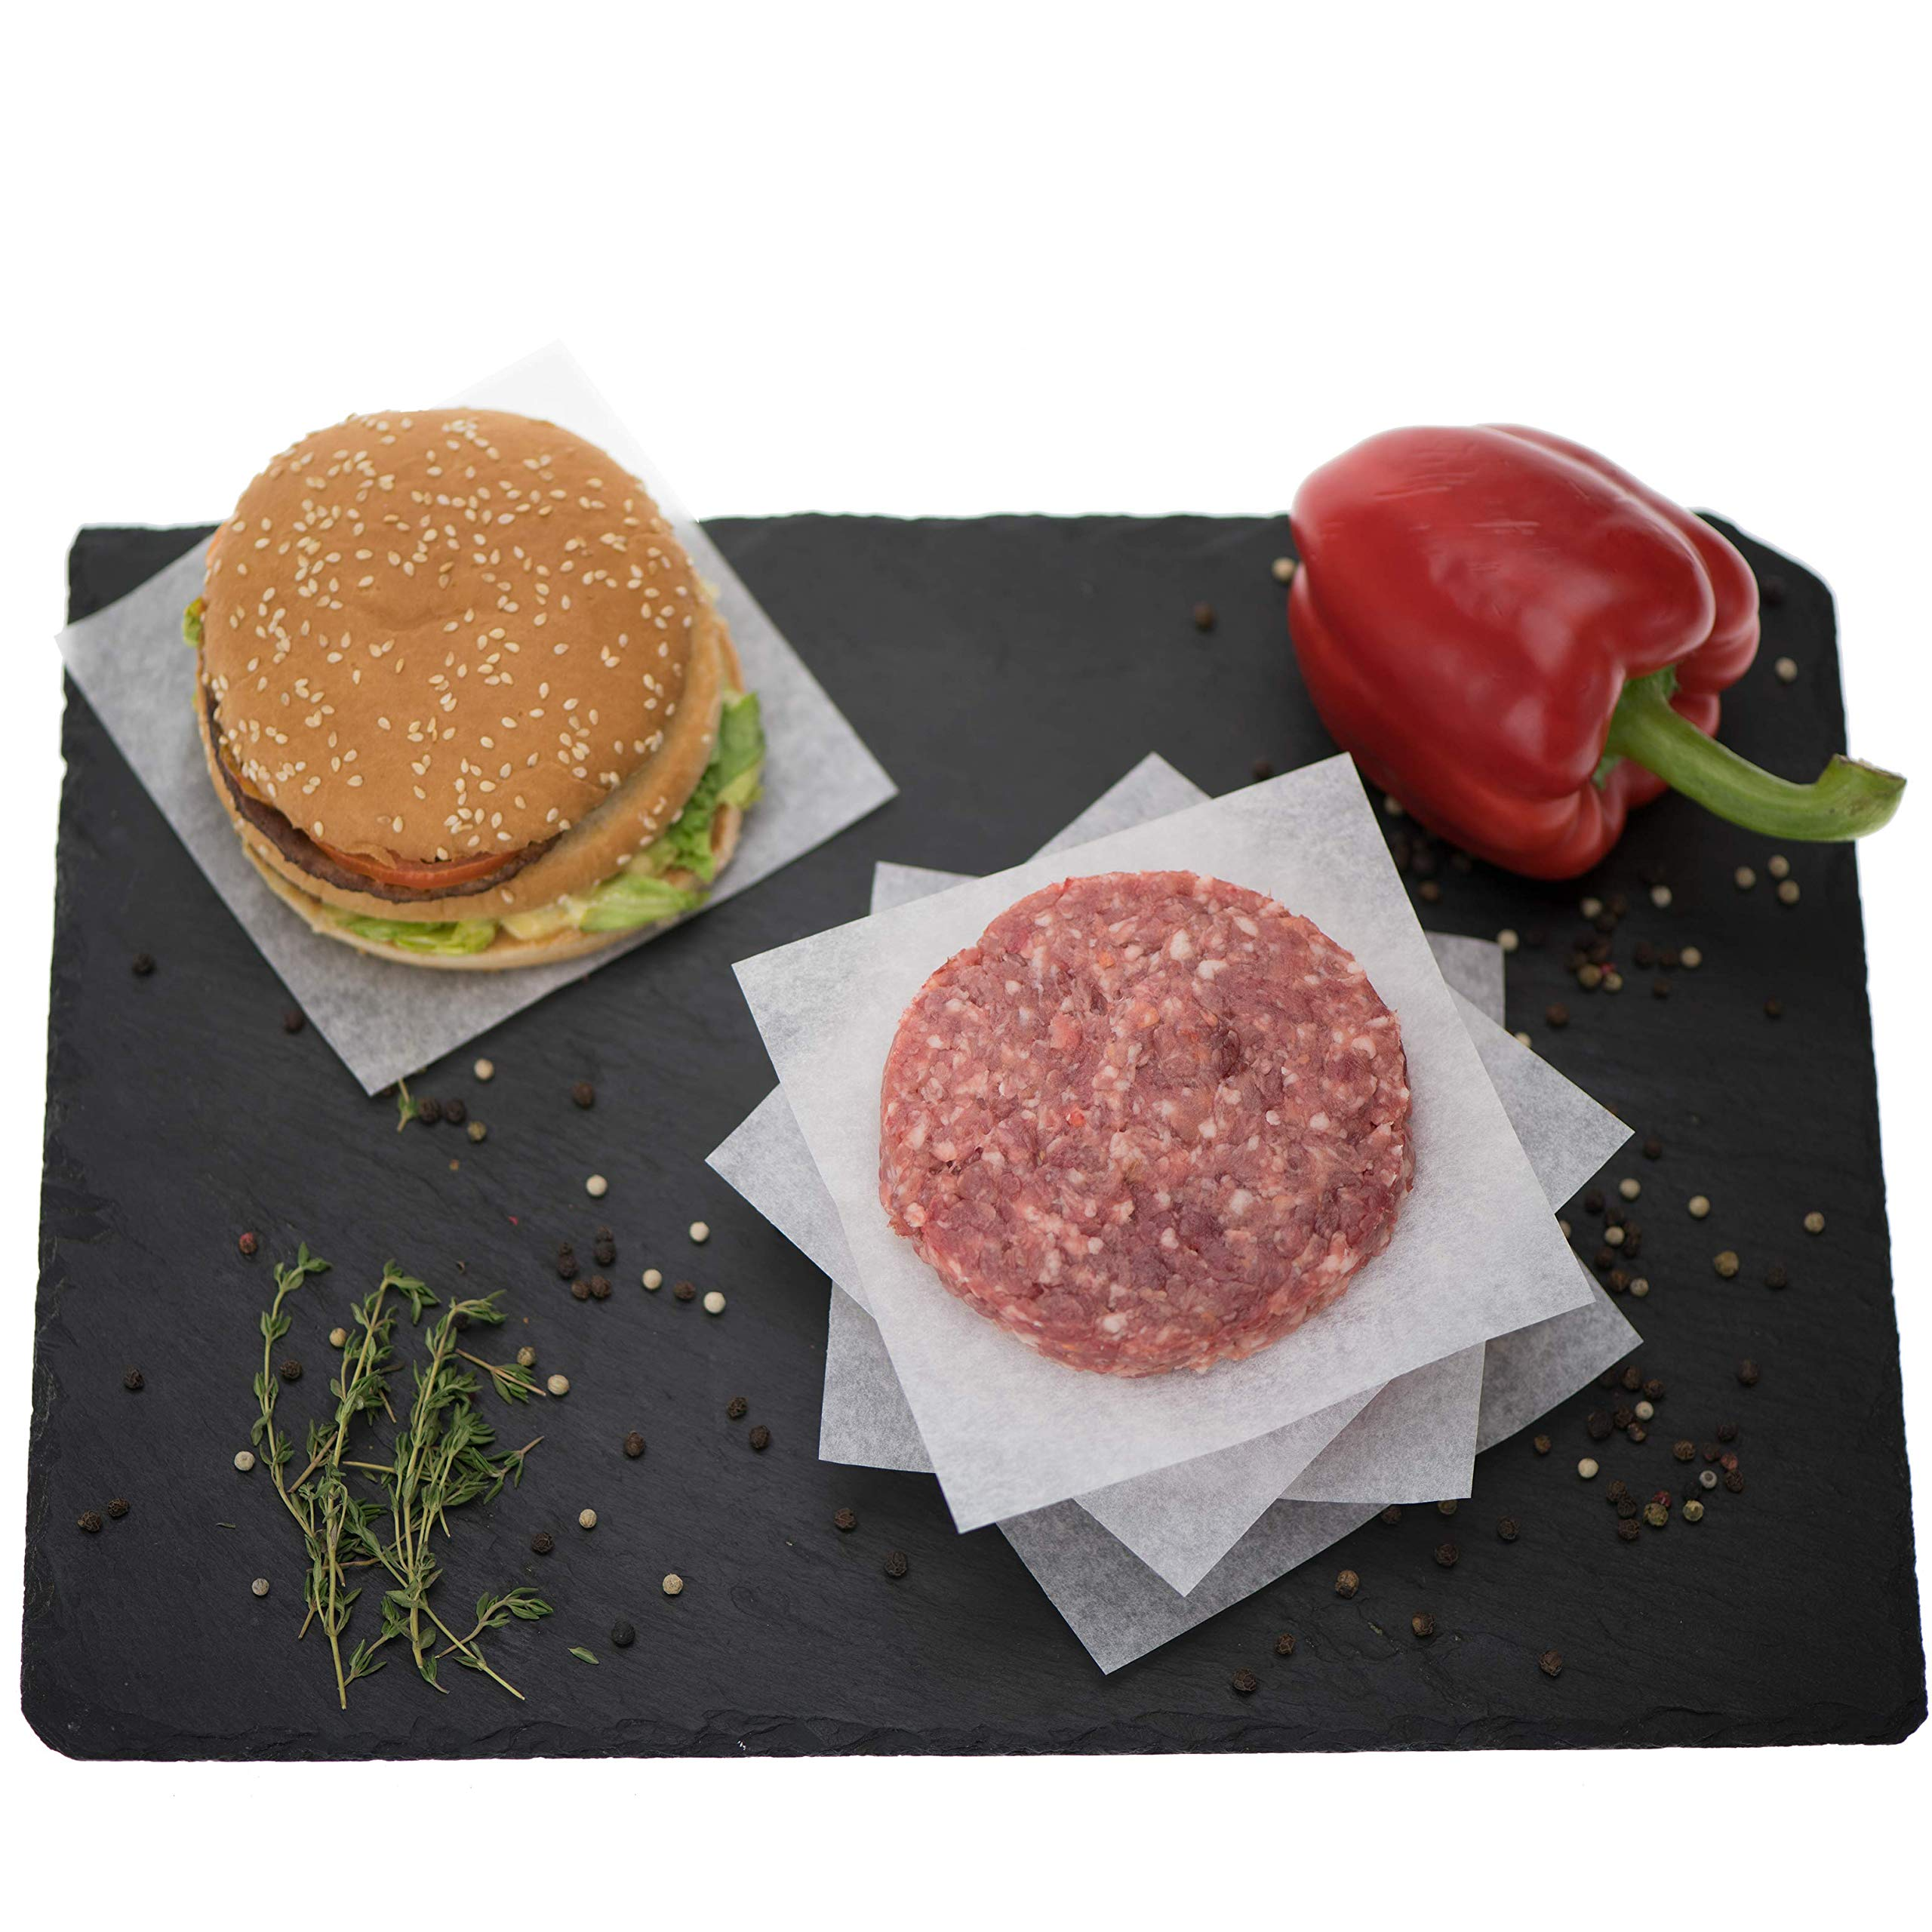 ZeZaZu Parchment Paper Squares 5.5 x 5.5 inches (1000 sheets) - MADE IN EUROPE - for Baking, Hamburger, Diamond Painting Craft | Dual-Sided Coating, Non-stick, Siliconized, Convenient Dispenser Box by ZEZAZU (Image #4)